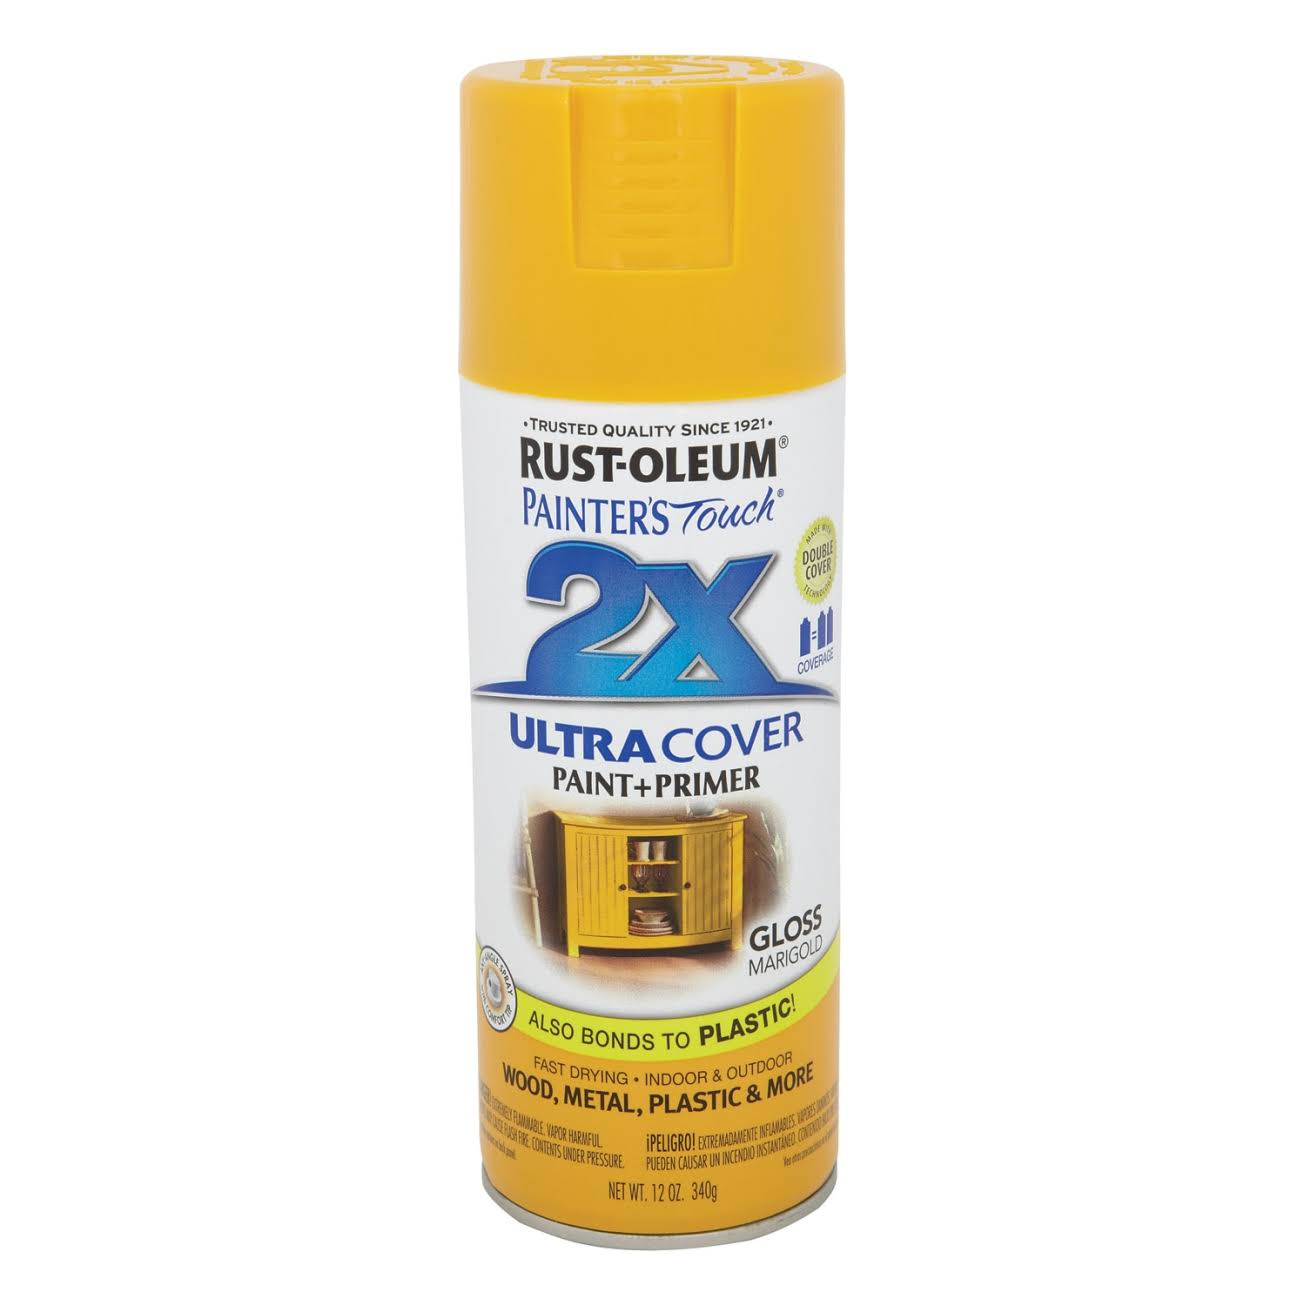 Rust-Oleum Painter's Touch Multi Purpose Spray Paint - Marigold, 12oz